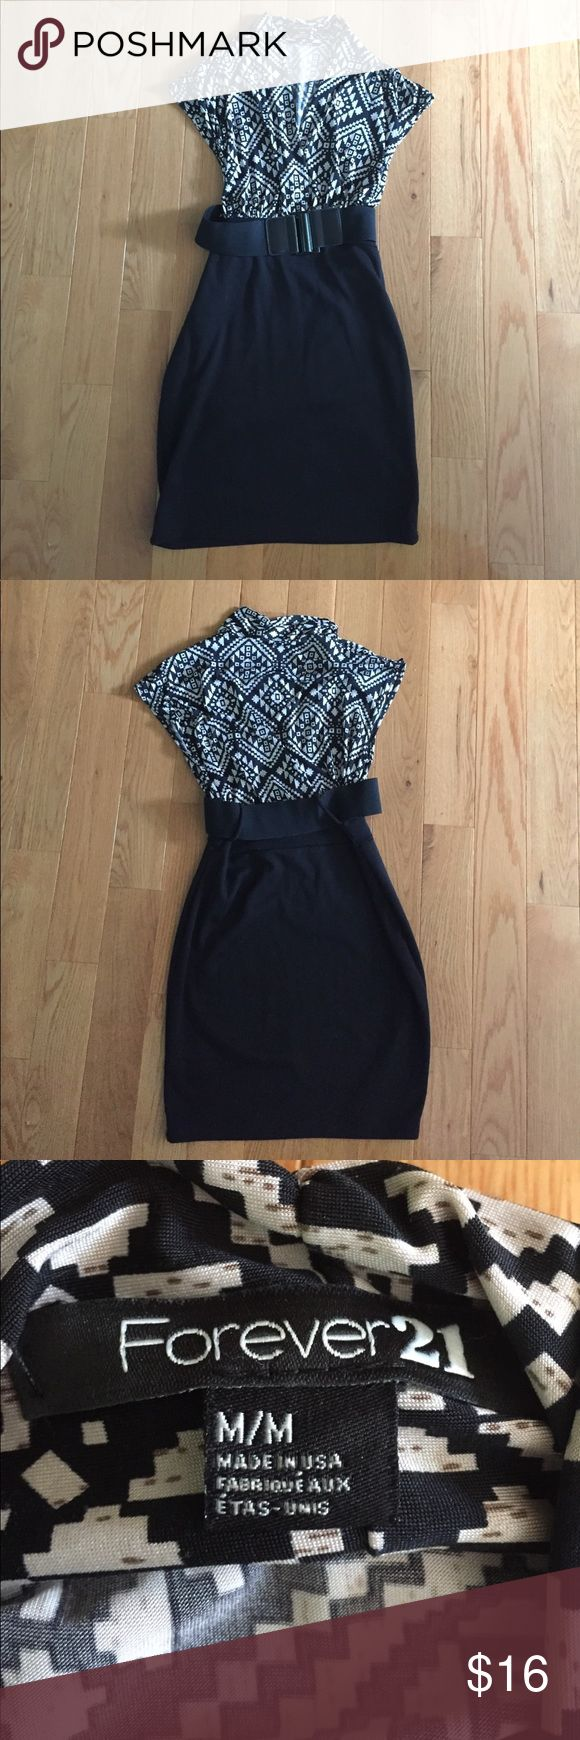 Forever 21 blouse top body con dress with belt Has a silk blouse like top, v neck, built in black body con skirt, removable belt, fits like small, super comfortable, thicker material on skirt bottom. Length goes to mid-low thigh (I'm 5'6') Forever 21 Dresses Midi